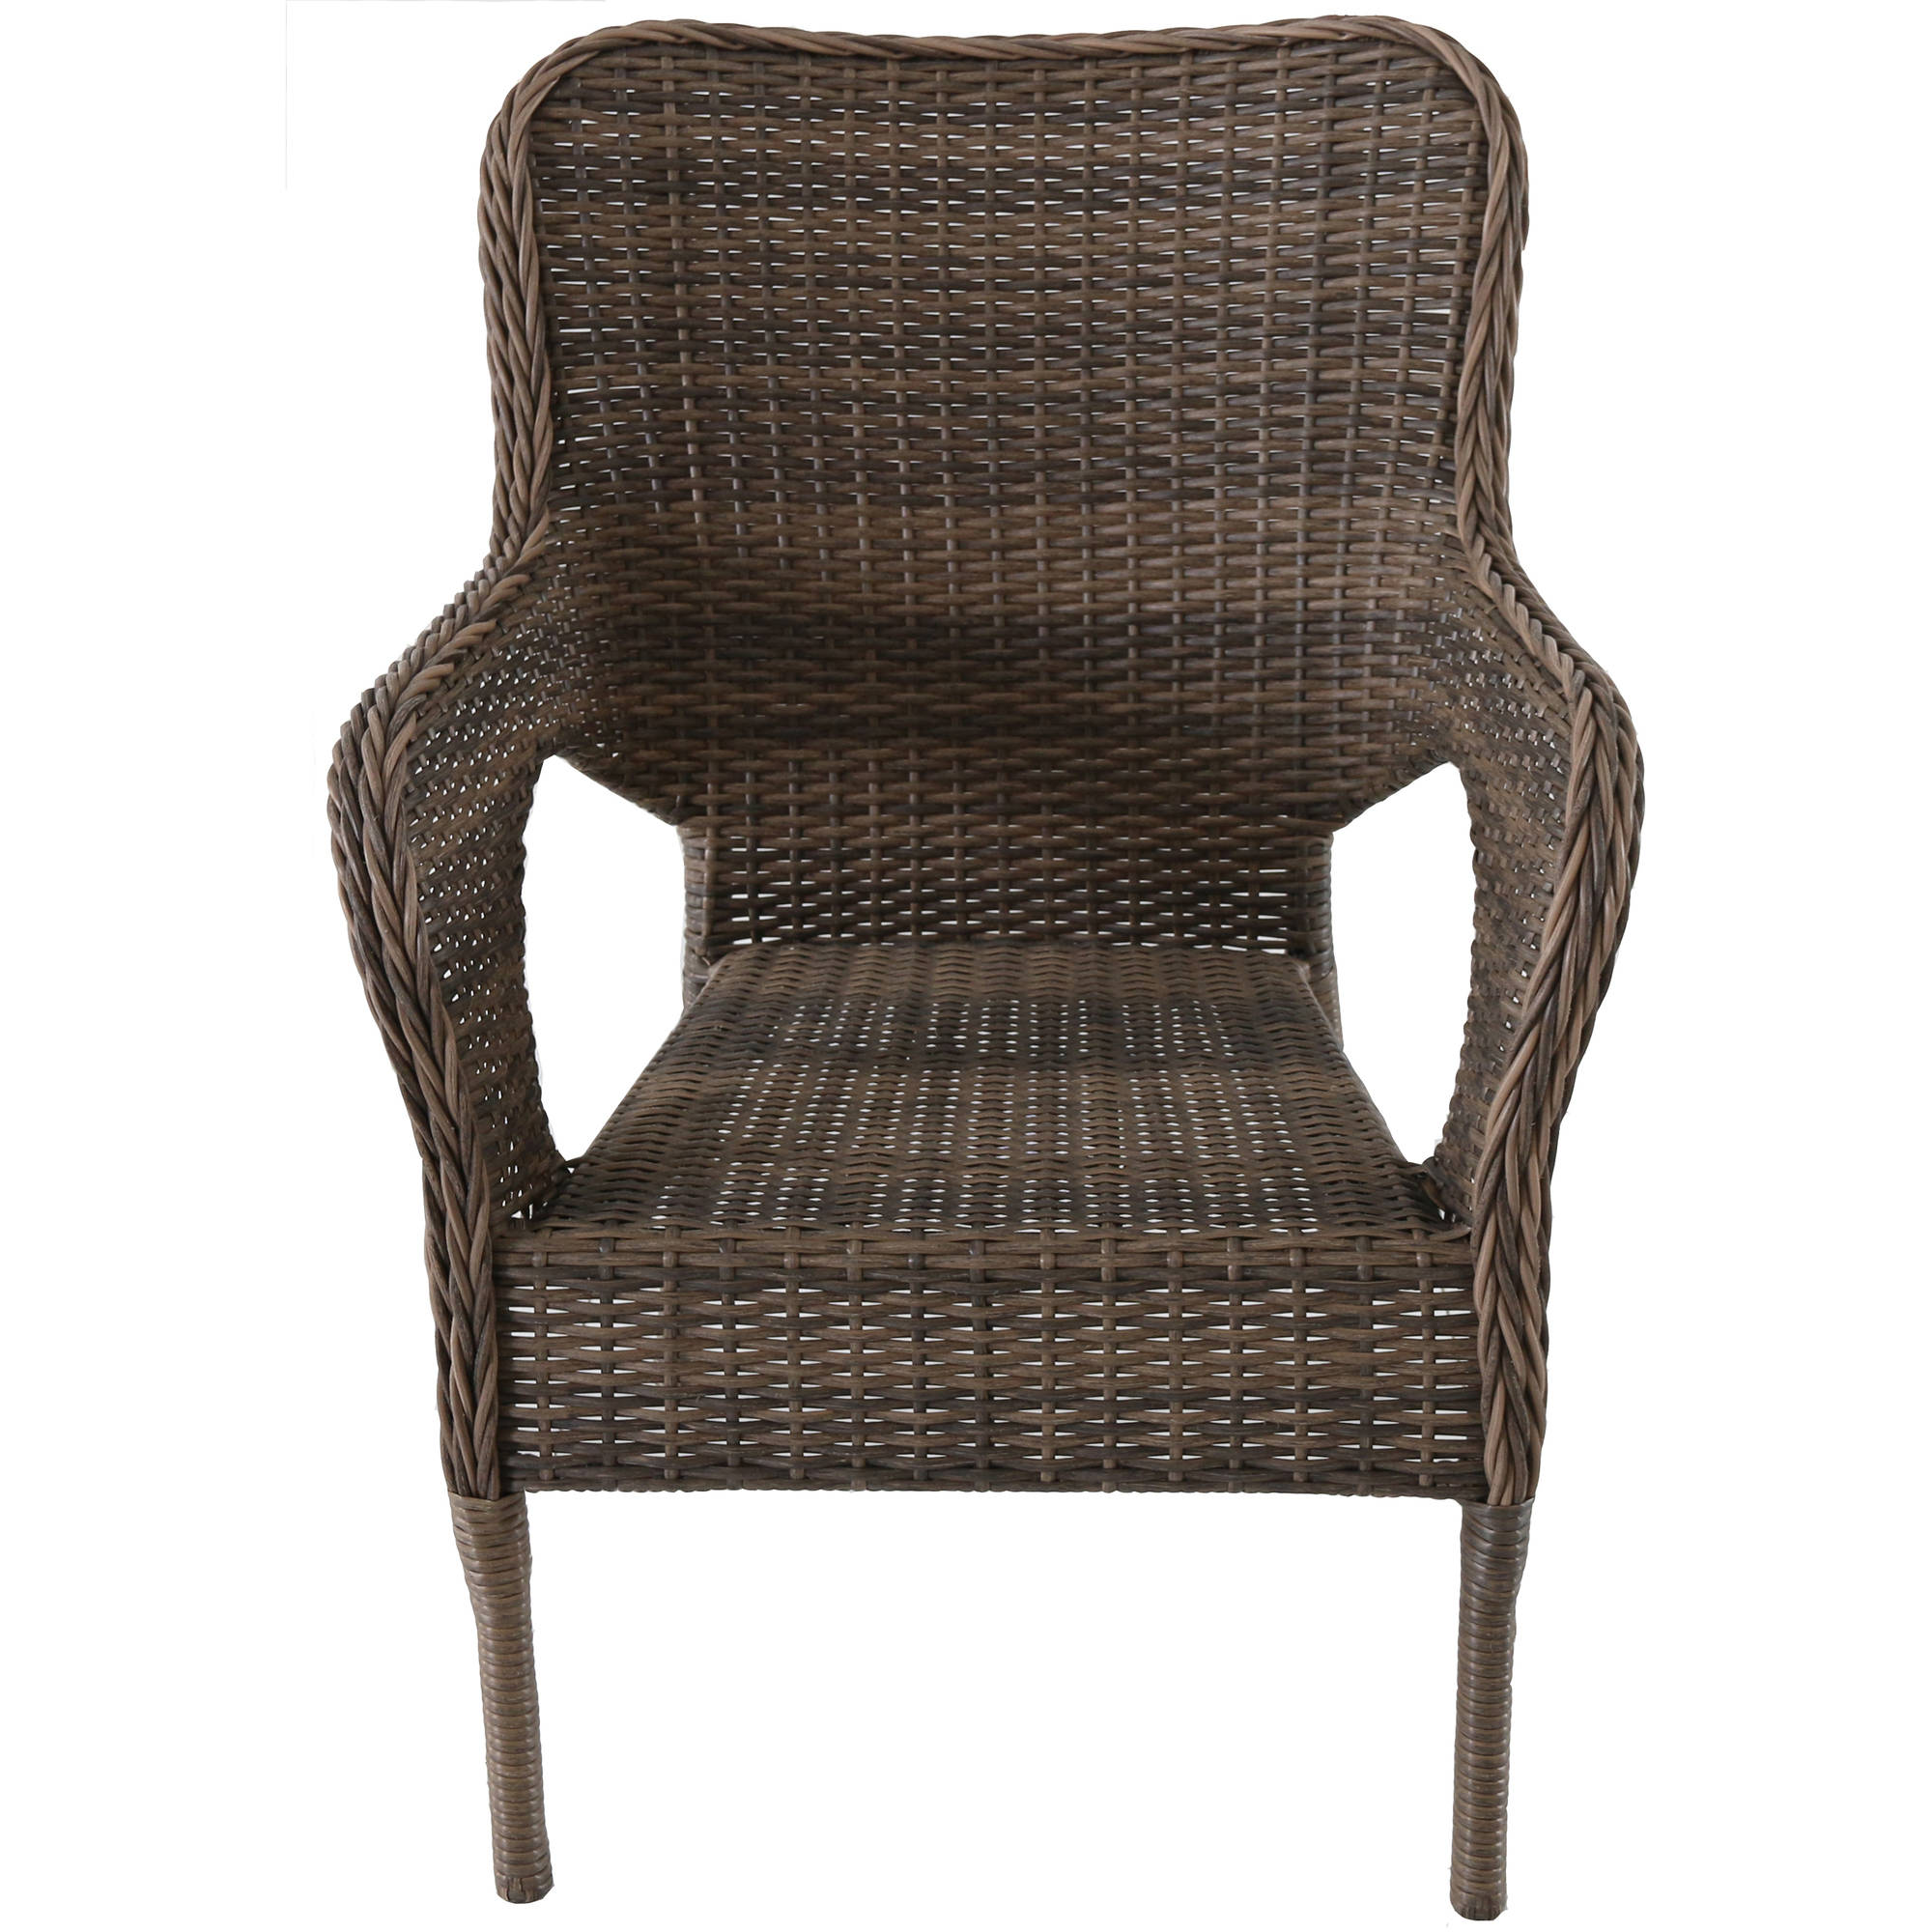 Better Homes and Gardens Camrose Farmhouse Mix and Match Stacking Wicker Chair, Brown